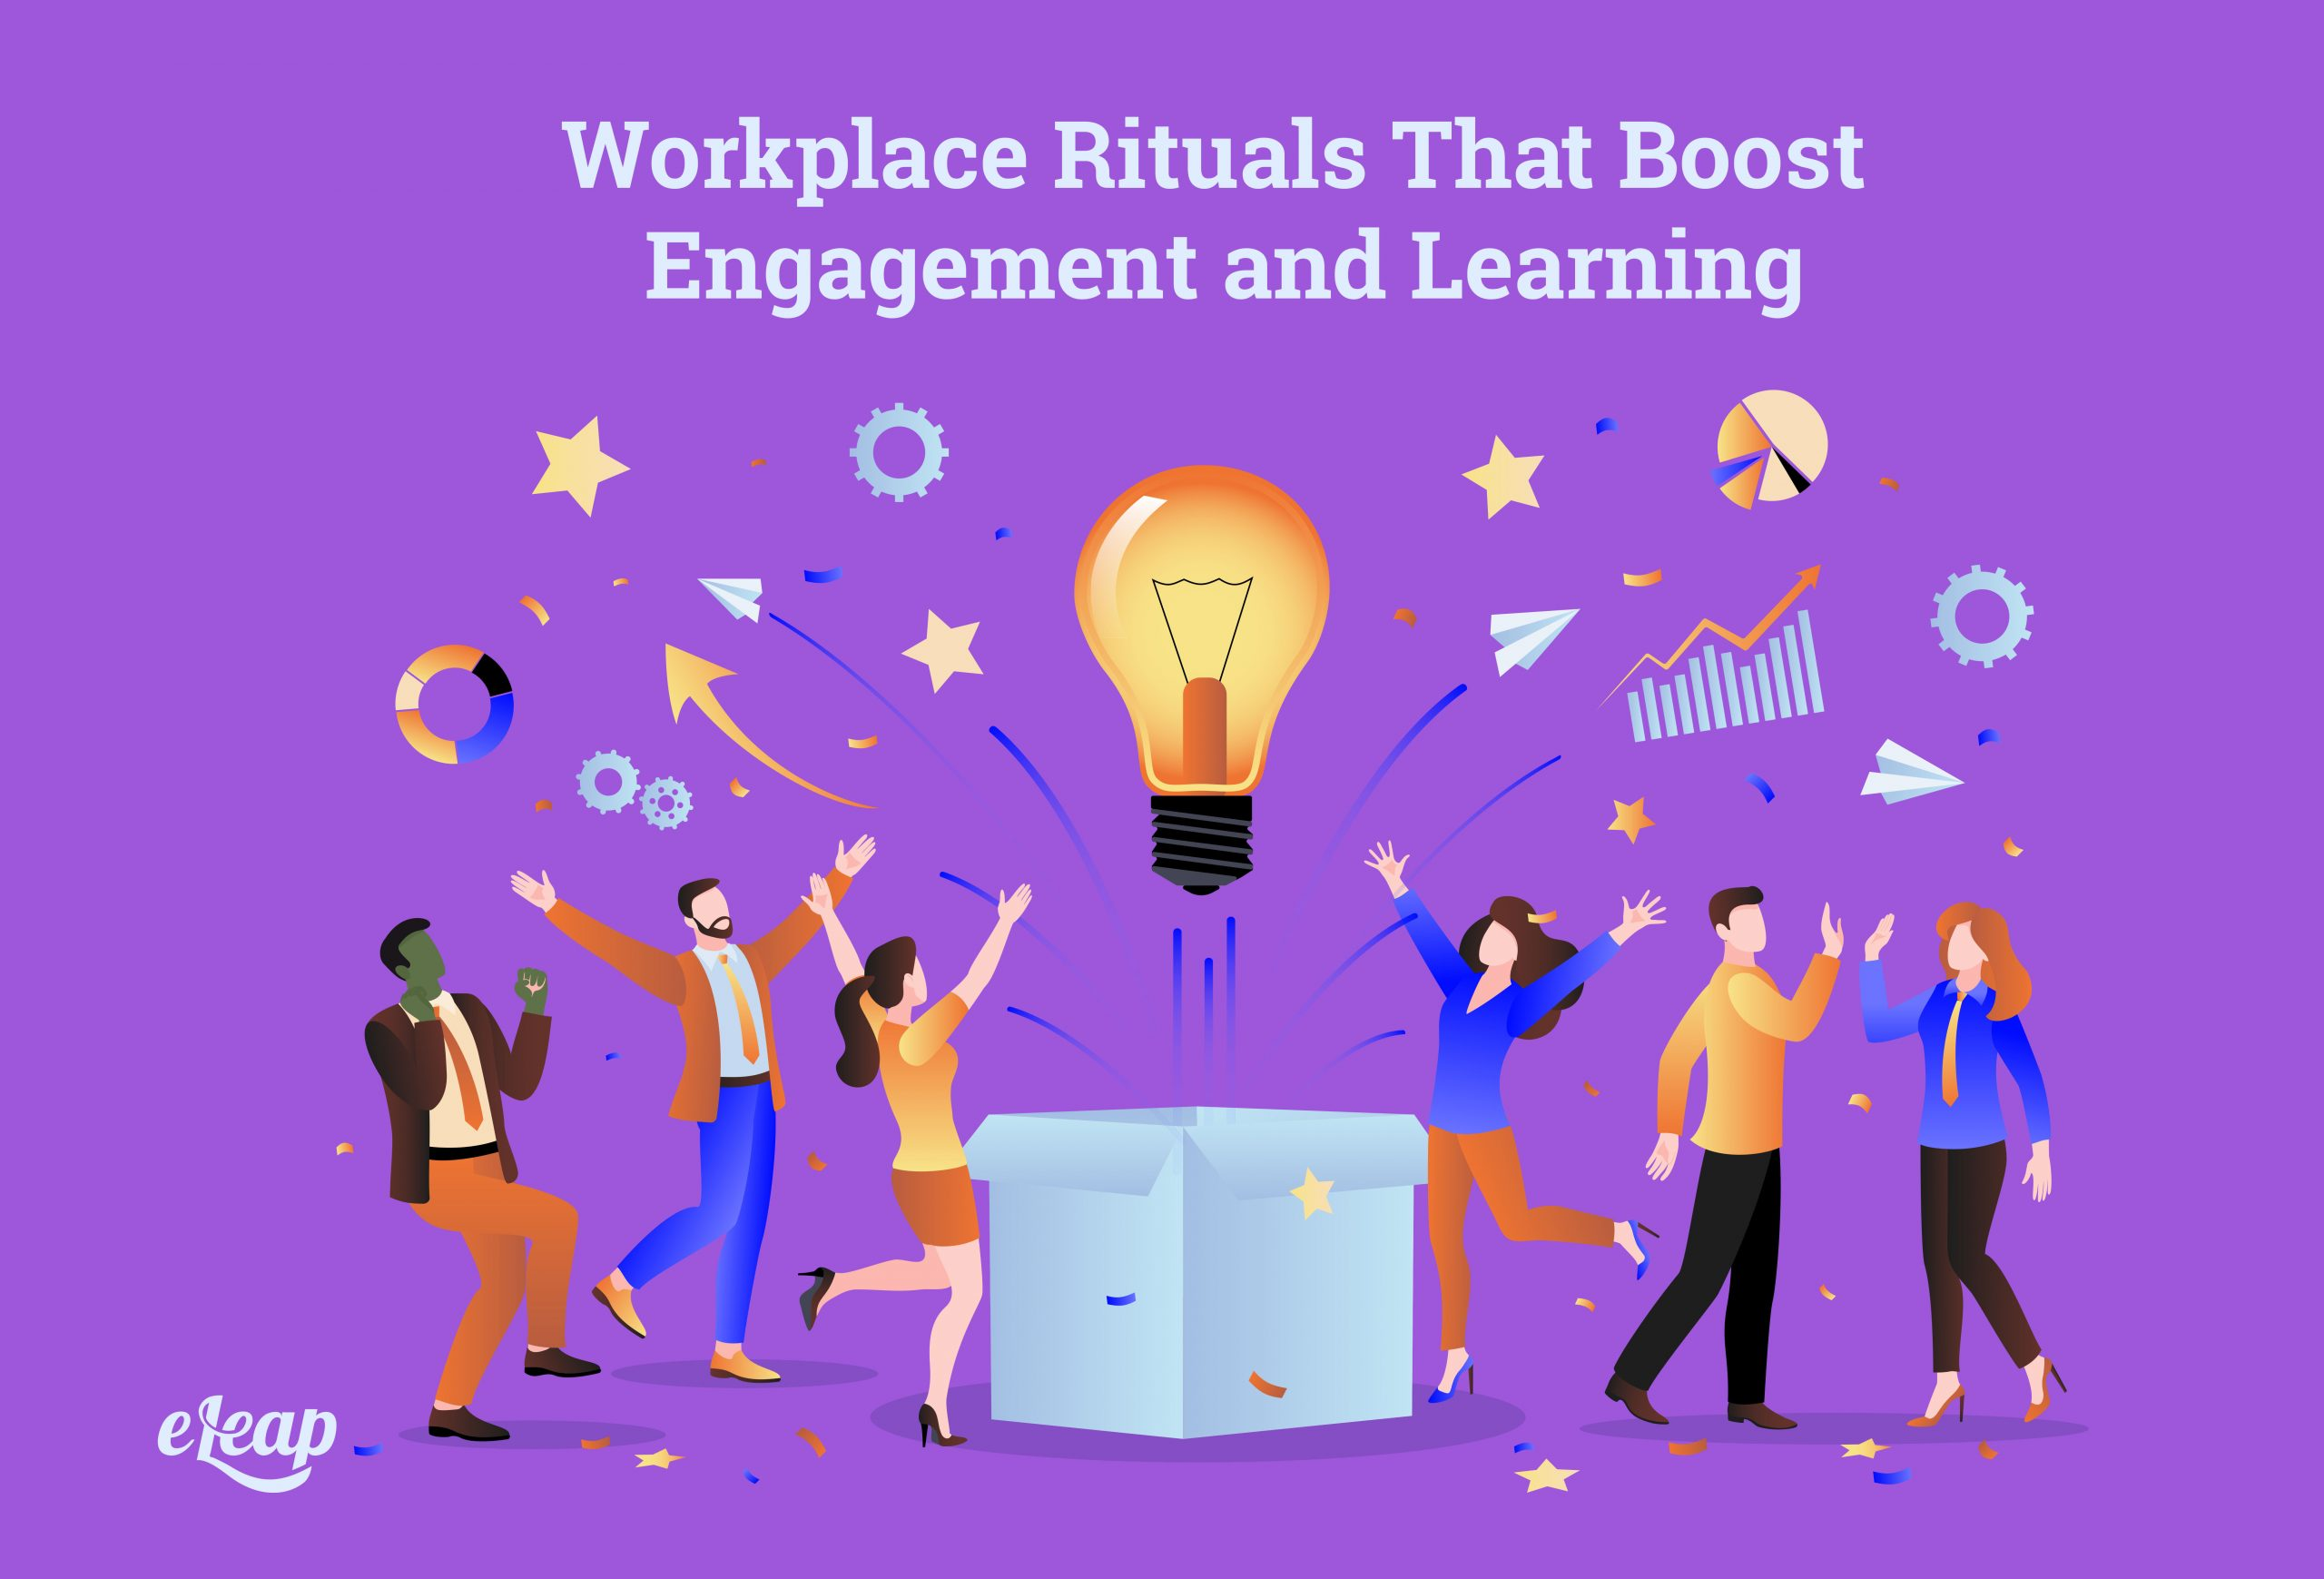 Workplace Rituals That Boost Engagement and Learning